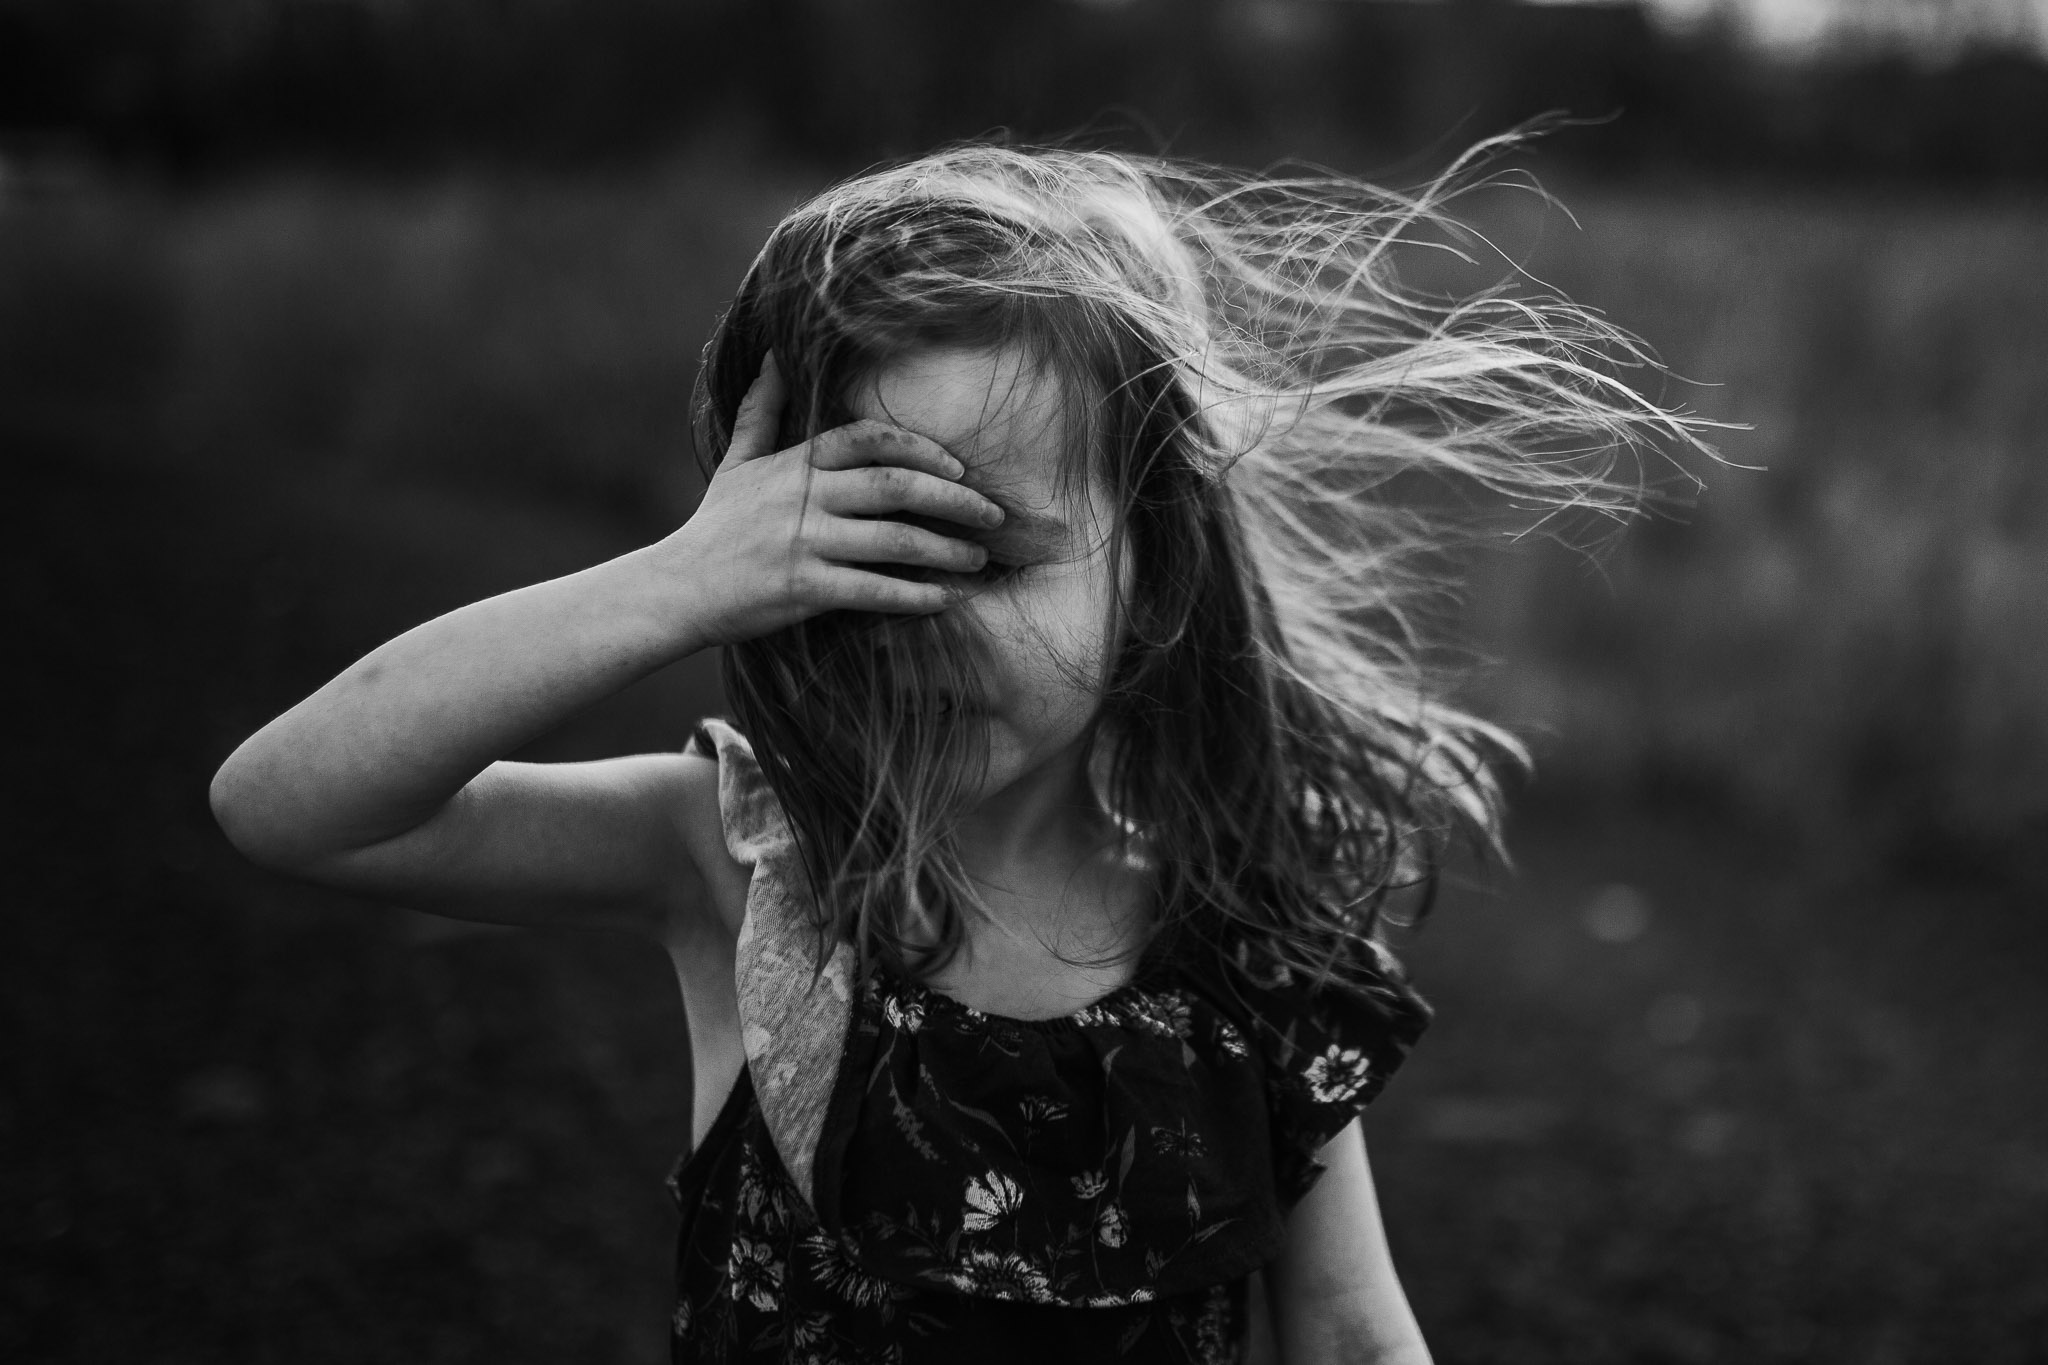 Black and white; girl in a floral dress tries to pull the hair out of her face as the wind blows it in every direction in Ashburn, Virginia